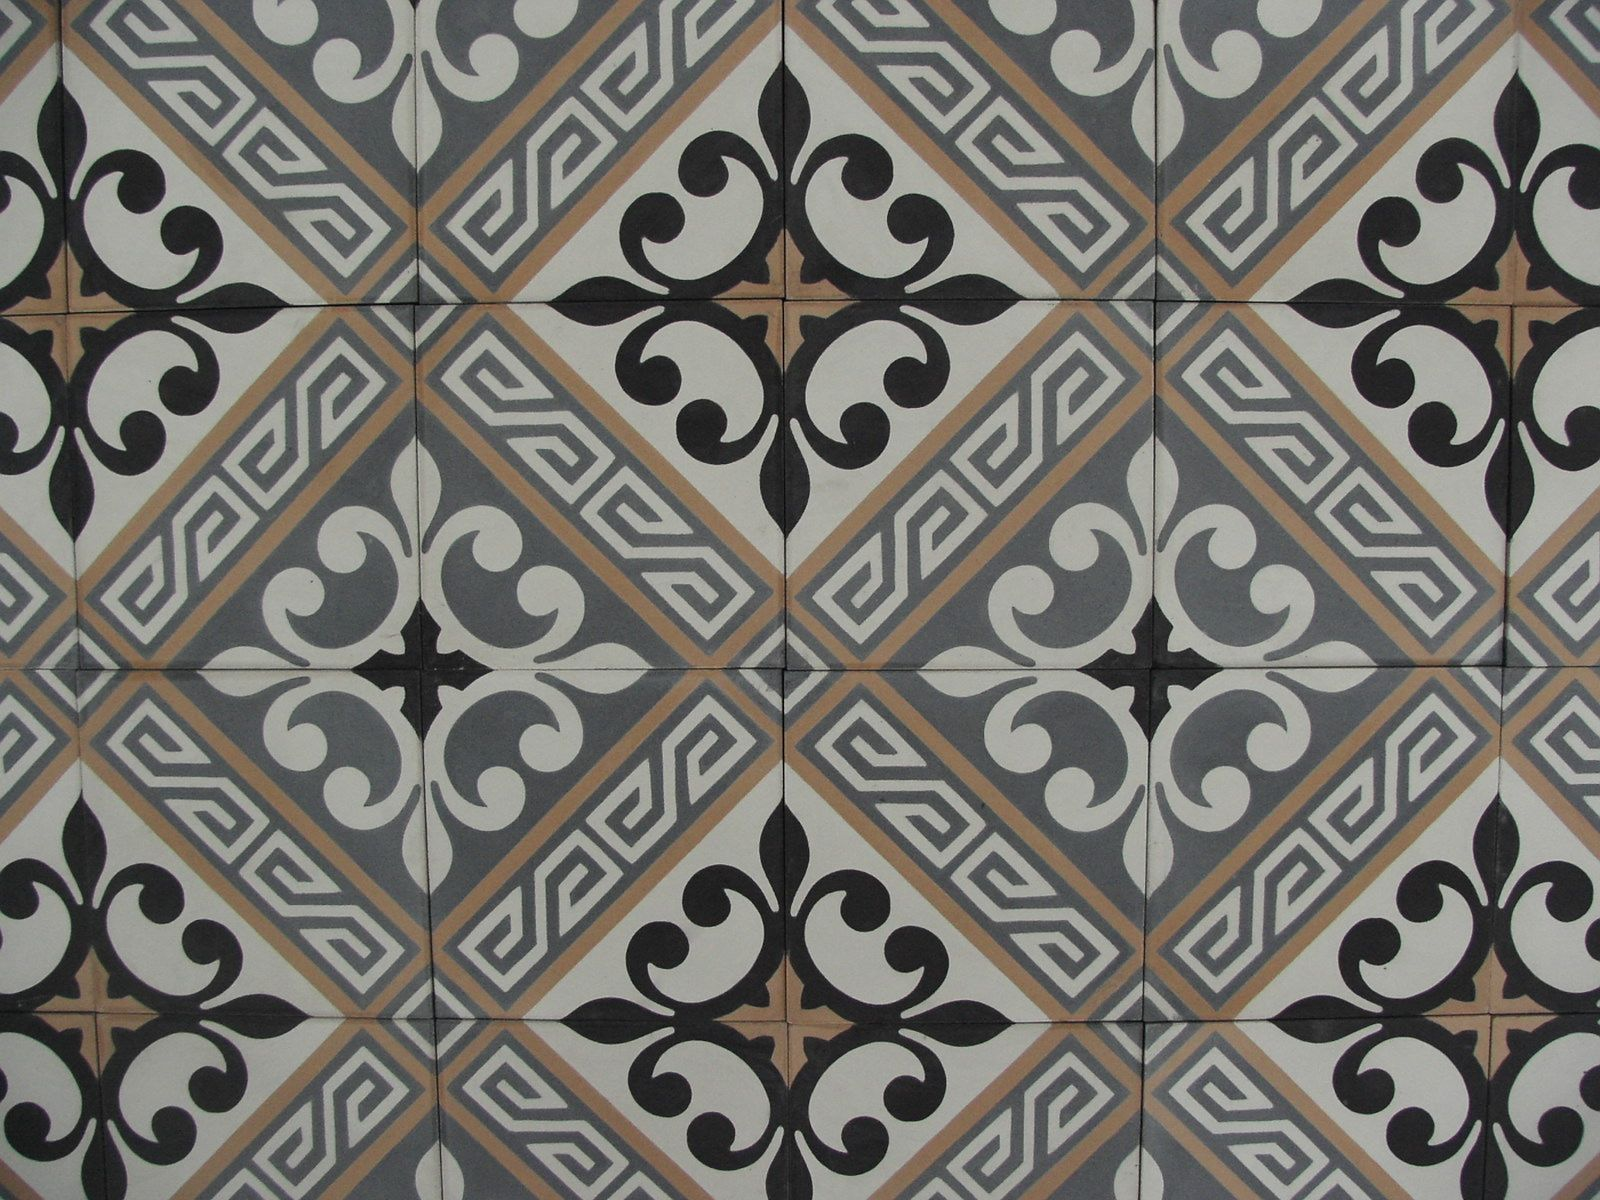 Lilyz black portugese tegels cement tiles encaustic floor tiles collection floorz pisar con - Credence cement tegels ...